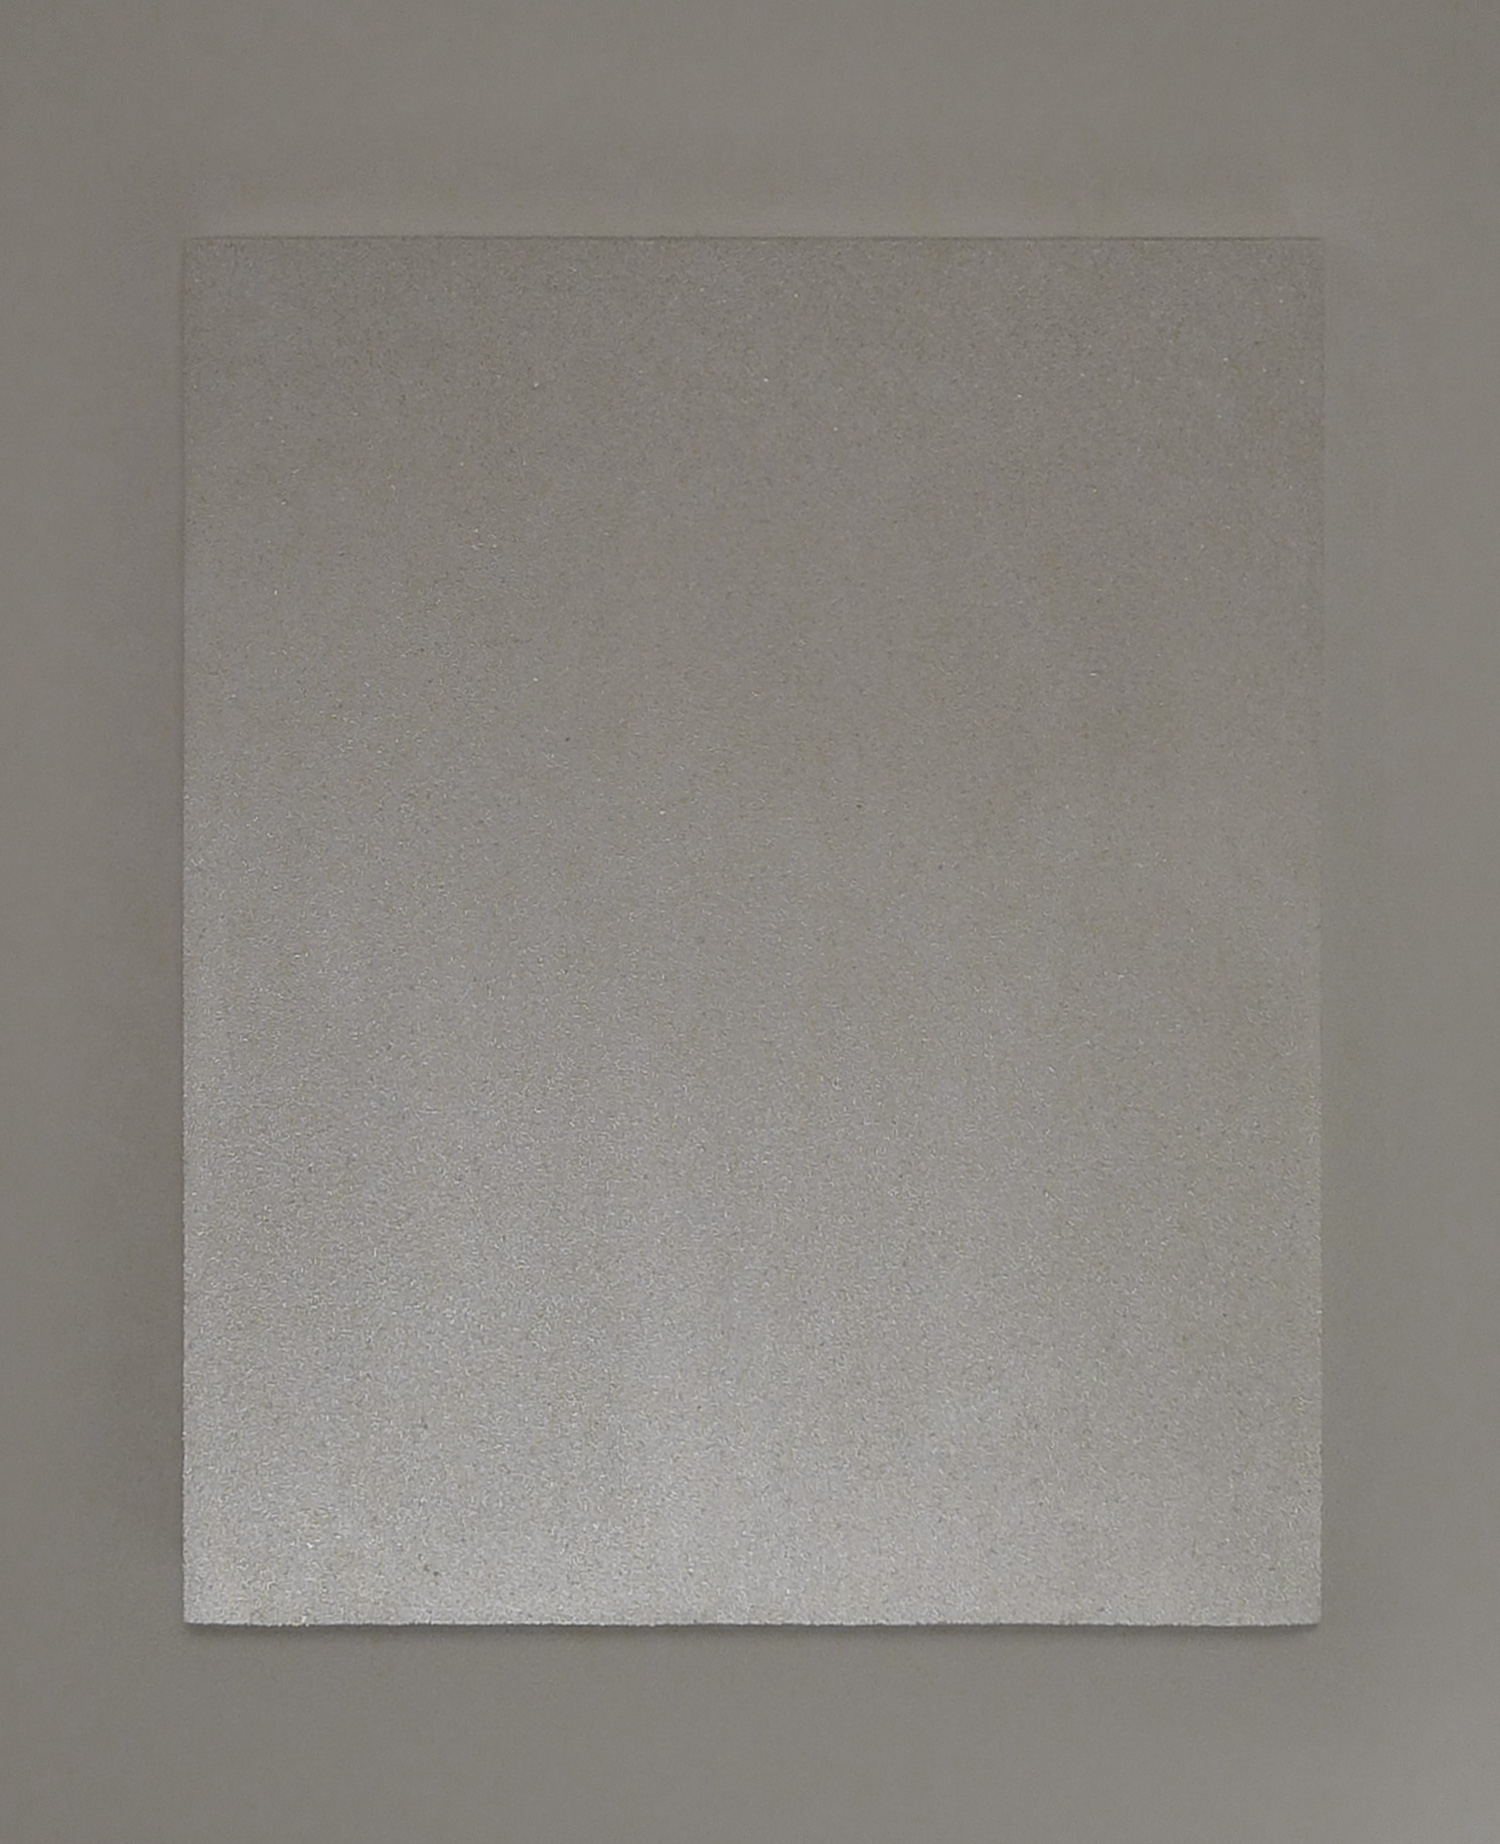 White-glass-painting-1-Buckley-72dpi-1500px-web.jpg